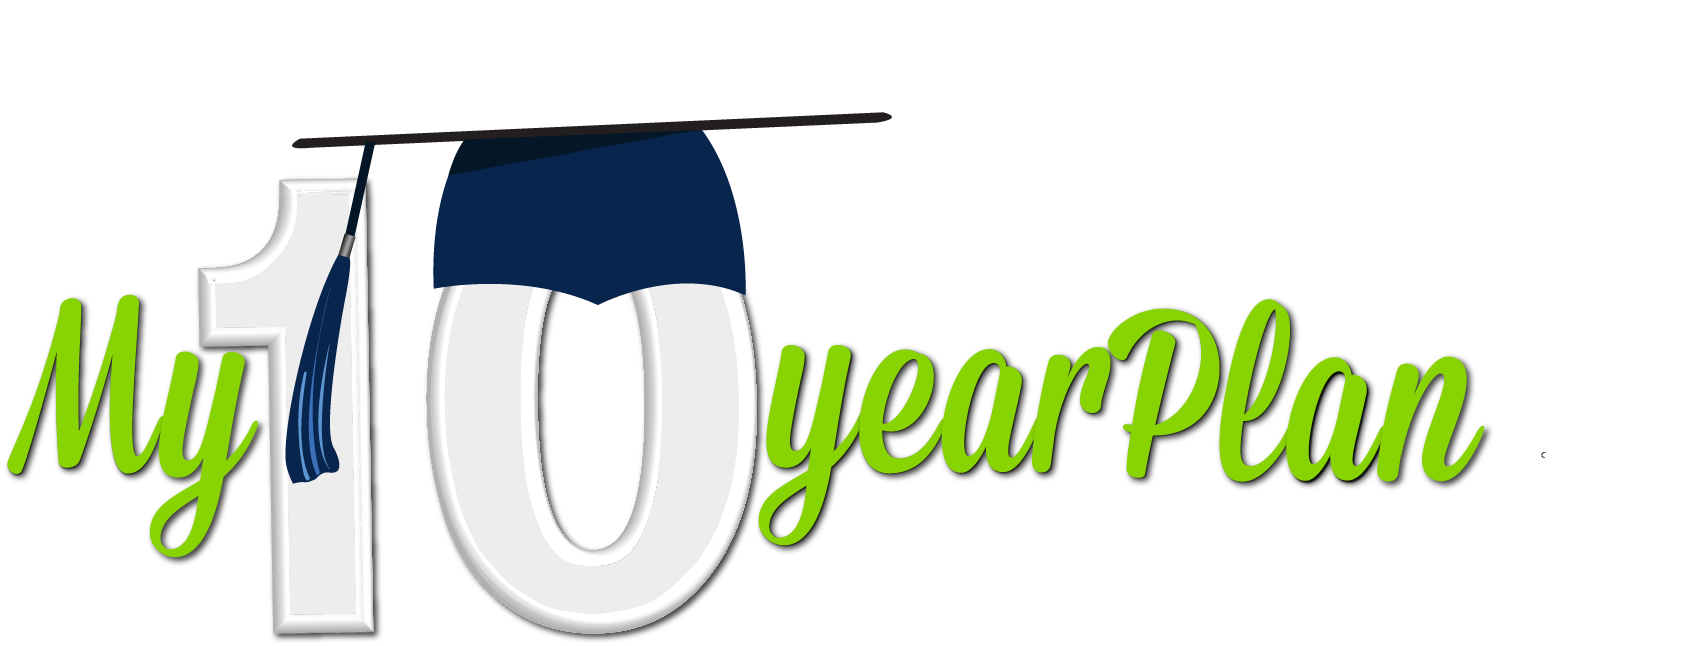 Home myyearplancom logo. Vision clipart planning